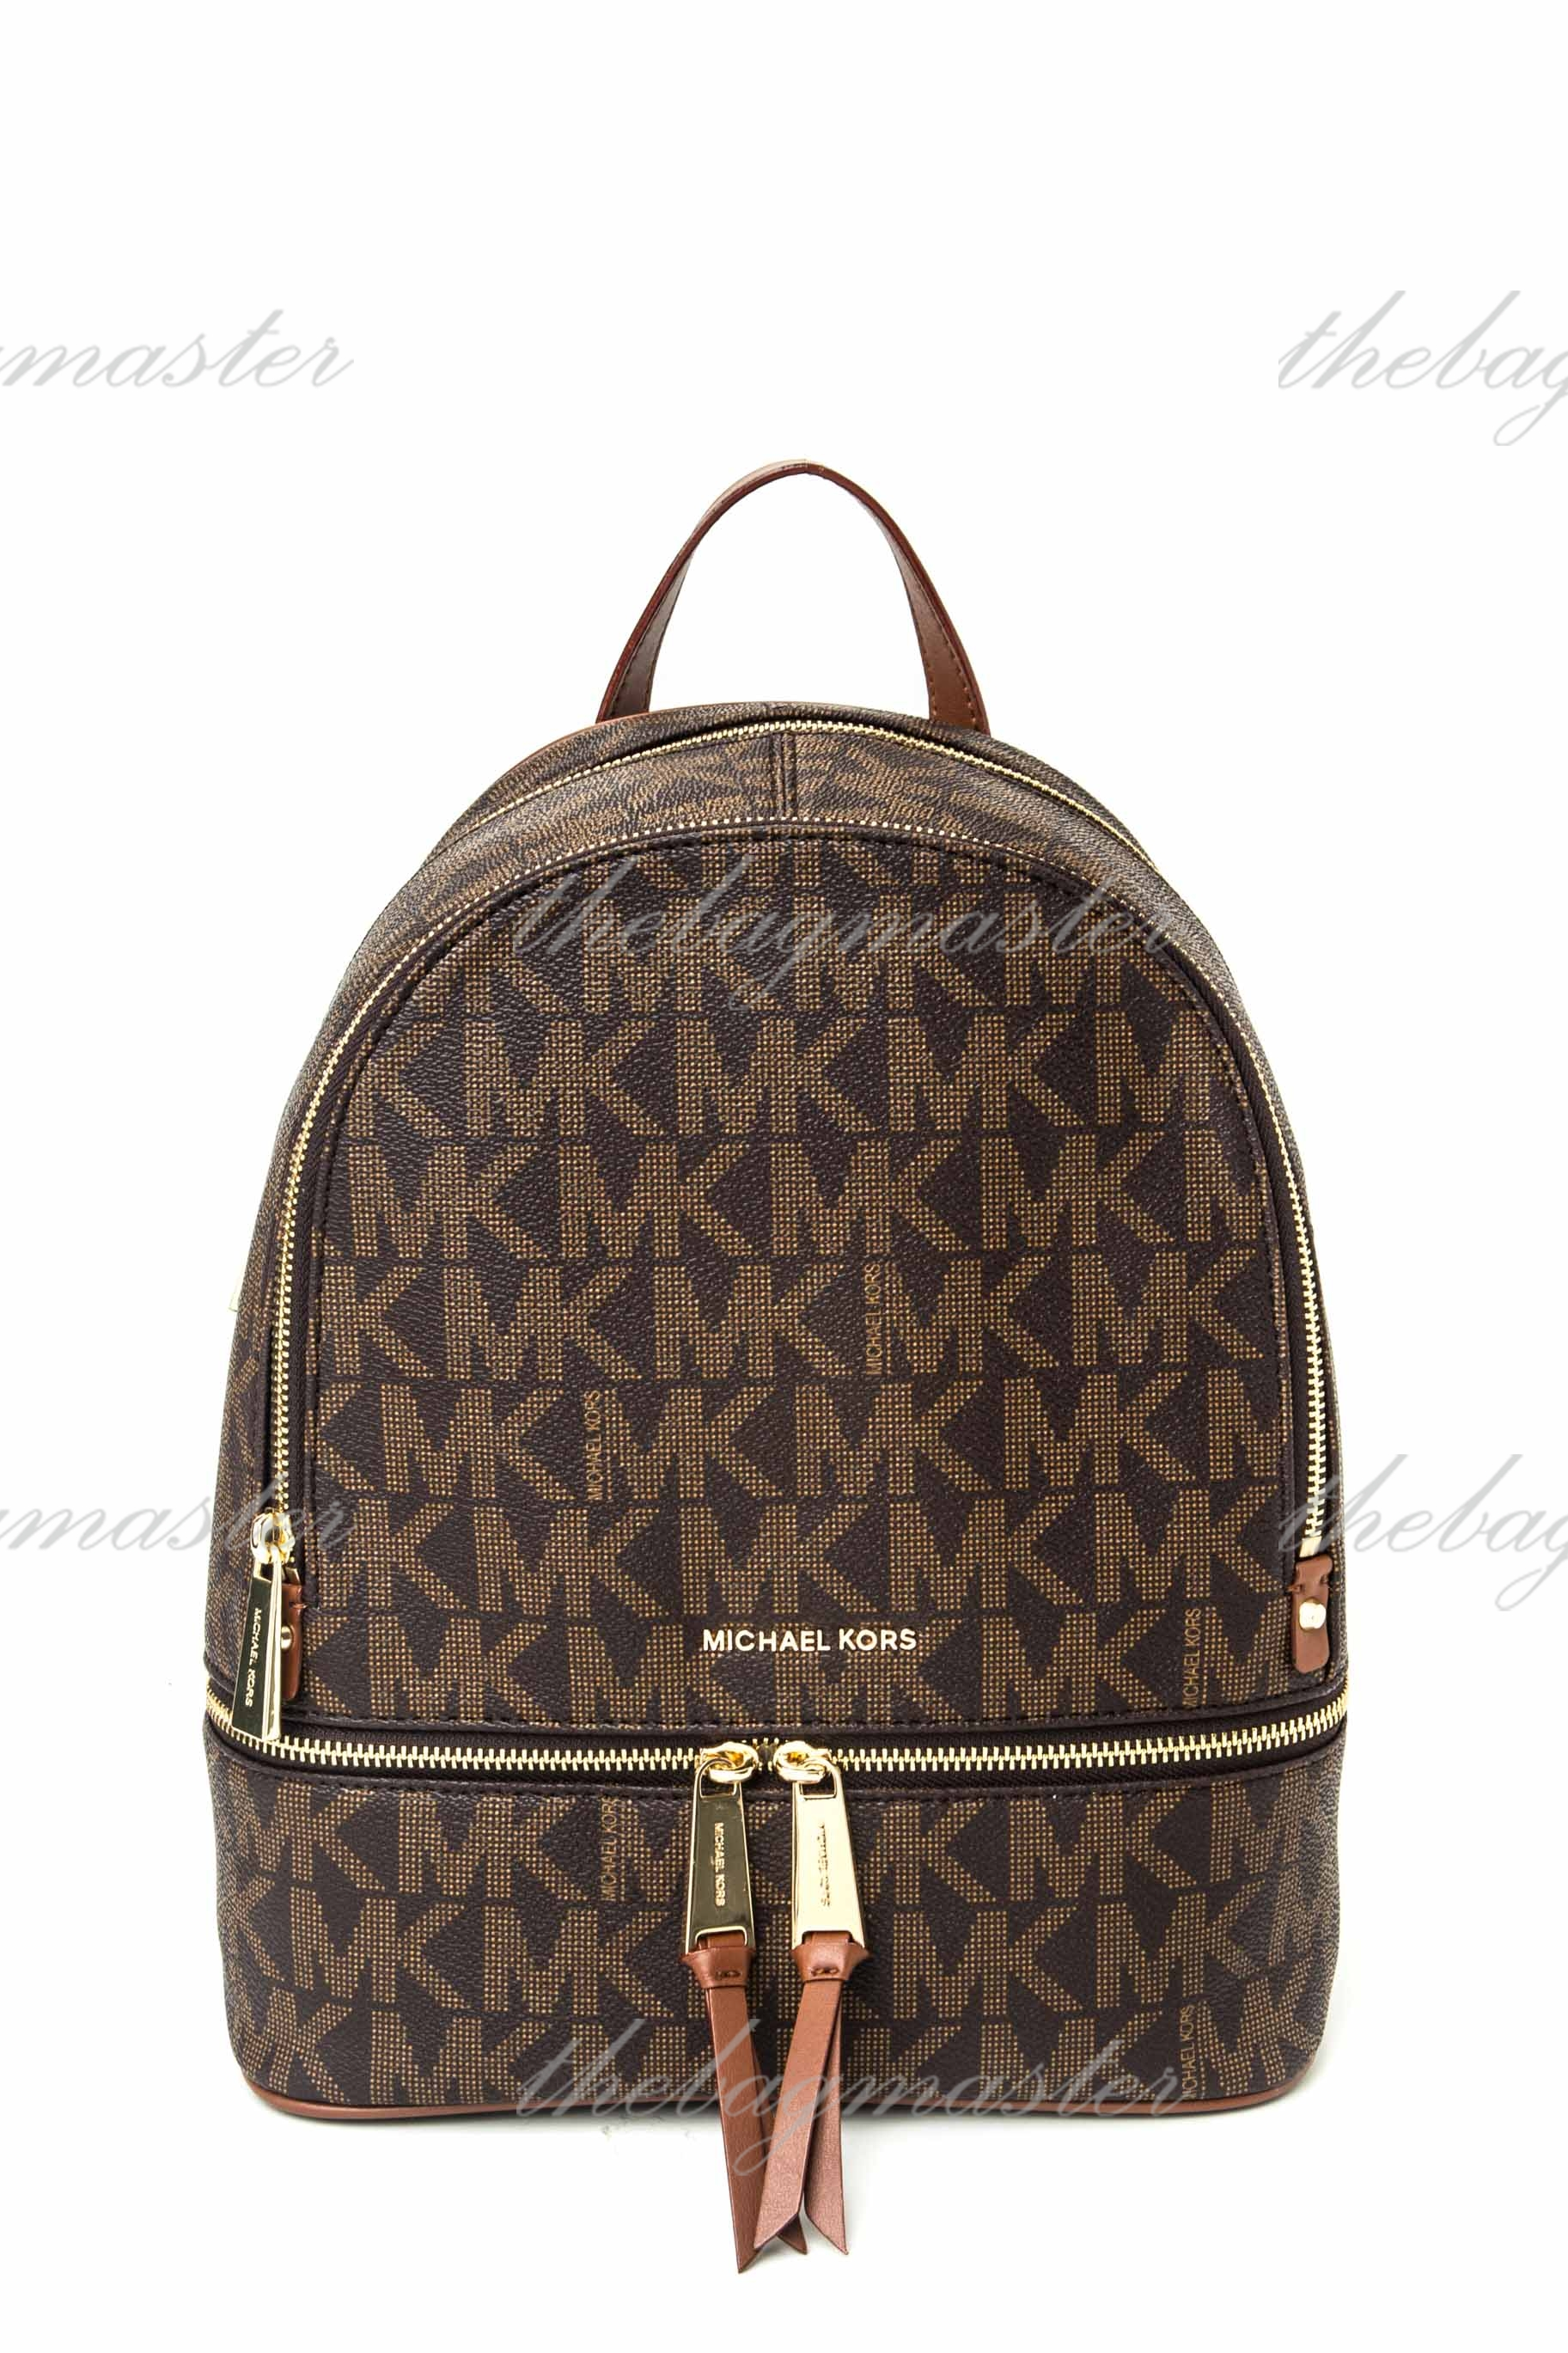 bcd1225094 Michael Kors Rhea Leather Monogram Backpack - Luggage Brown — The ...